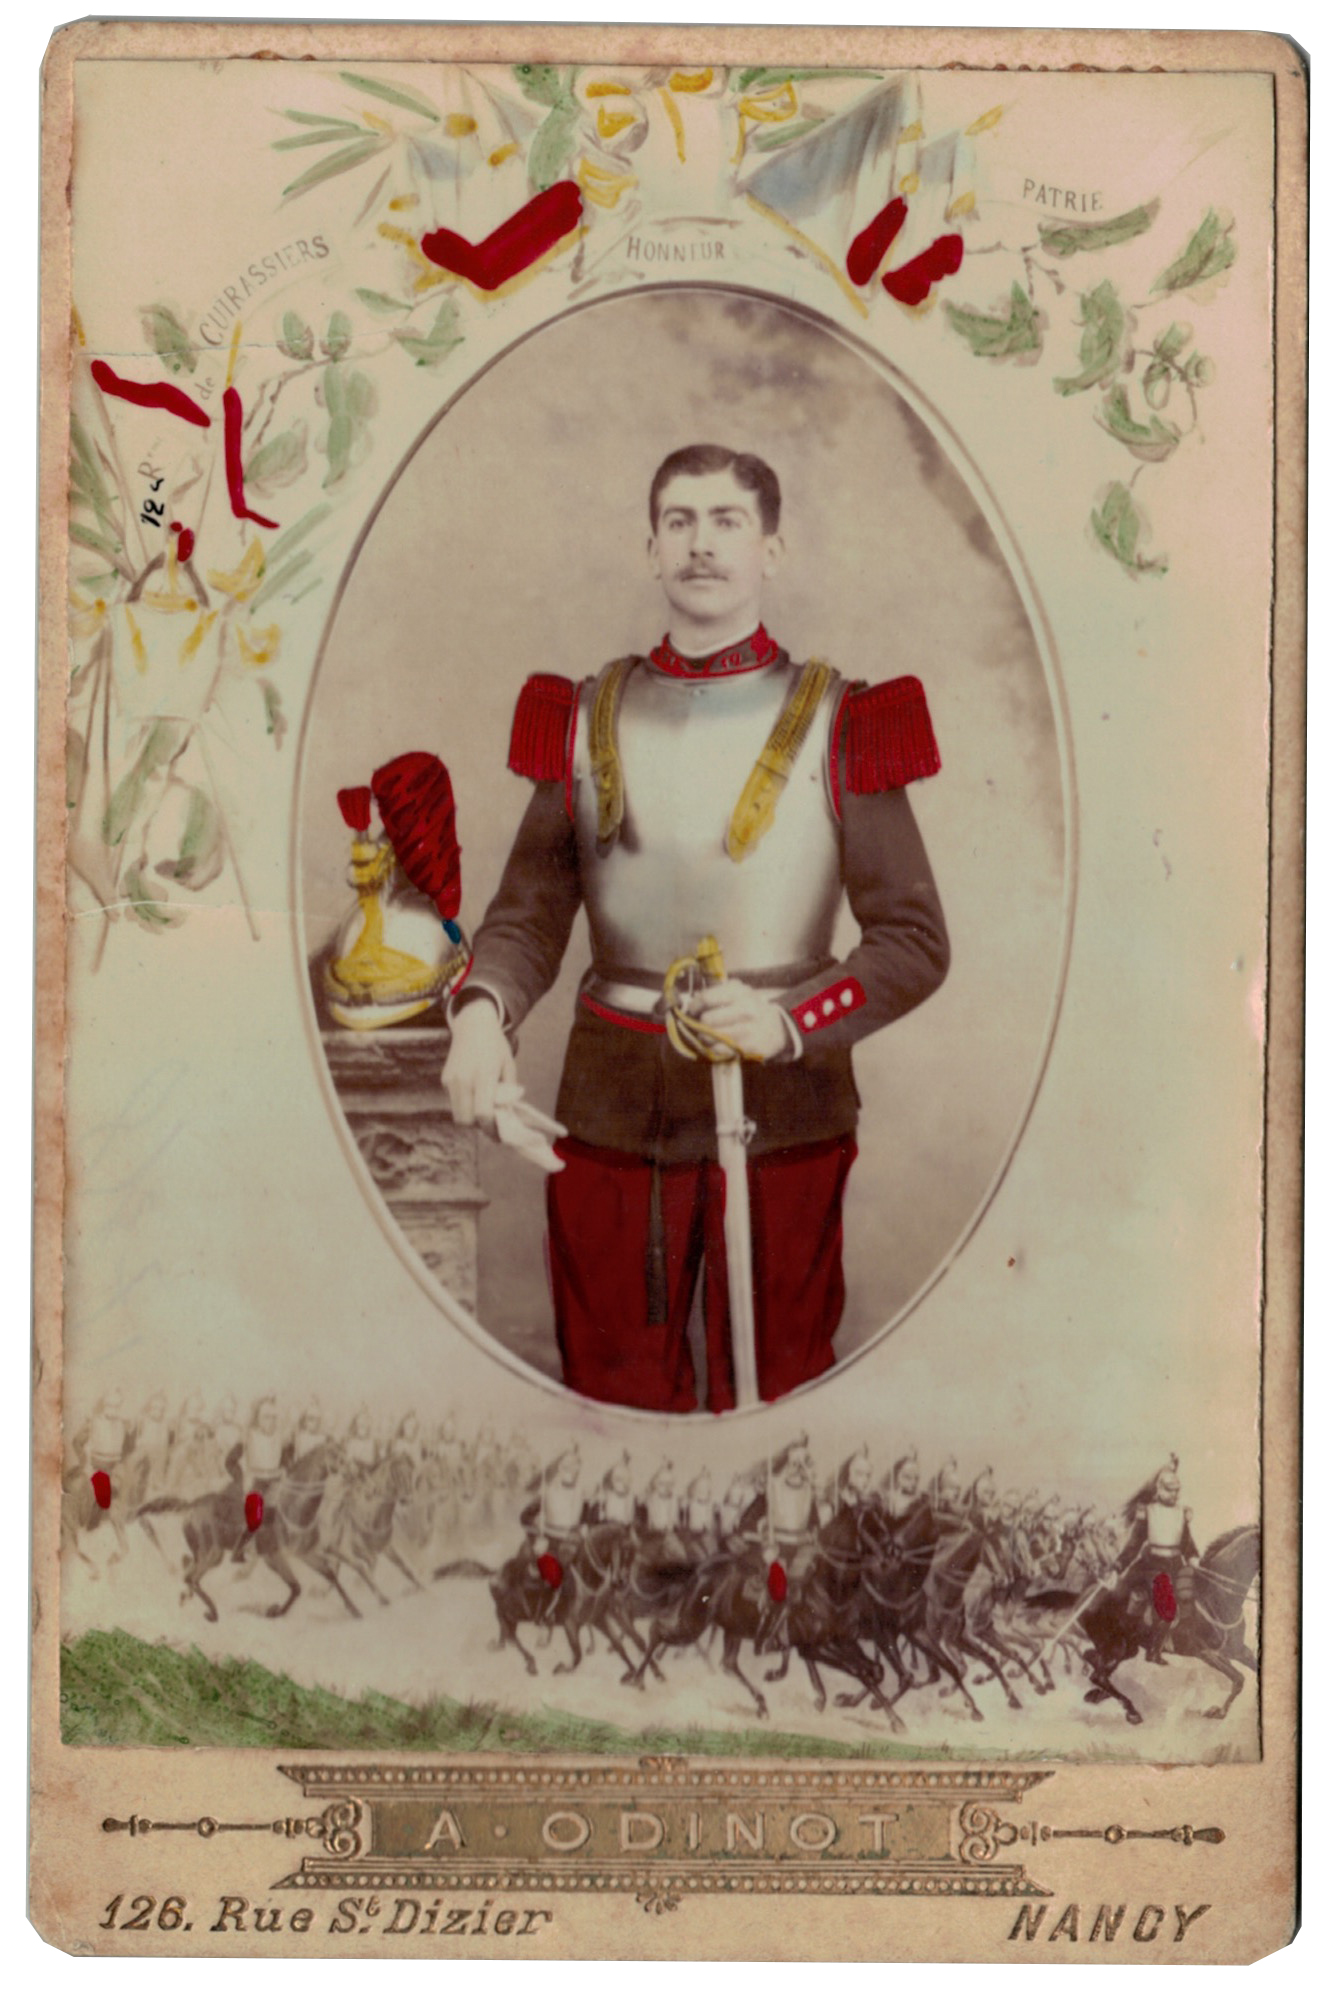 Carte CDV photo - Grand format - Soldat Cuirassier 3 République - Nancy - 12eme Cuirassier